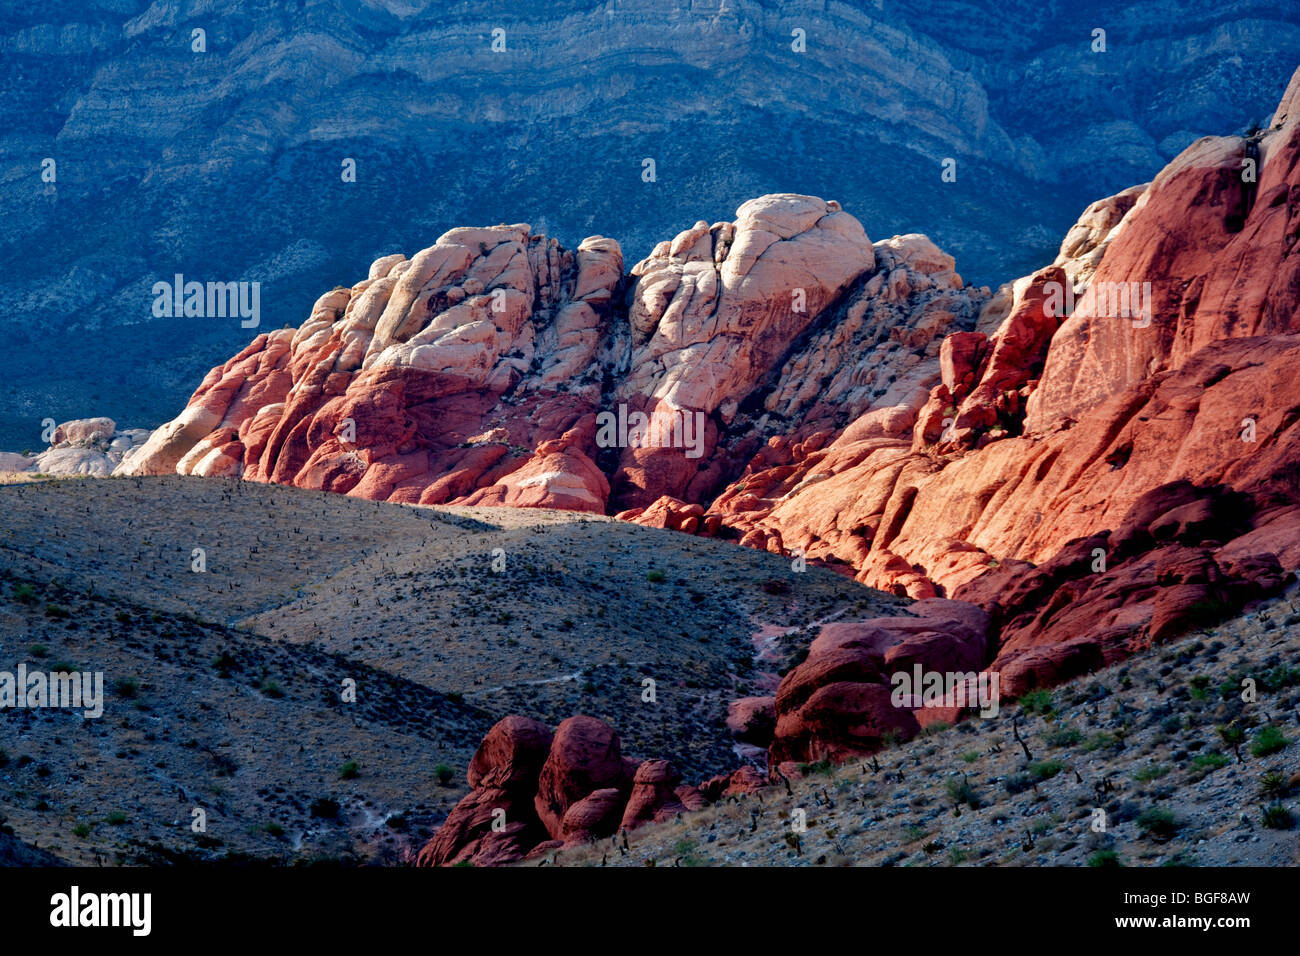 Rock formations in Red Rock Canyon National Conservation Area, Nevada - Stock Image